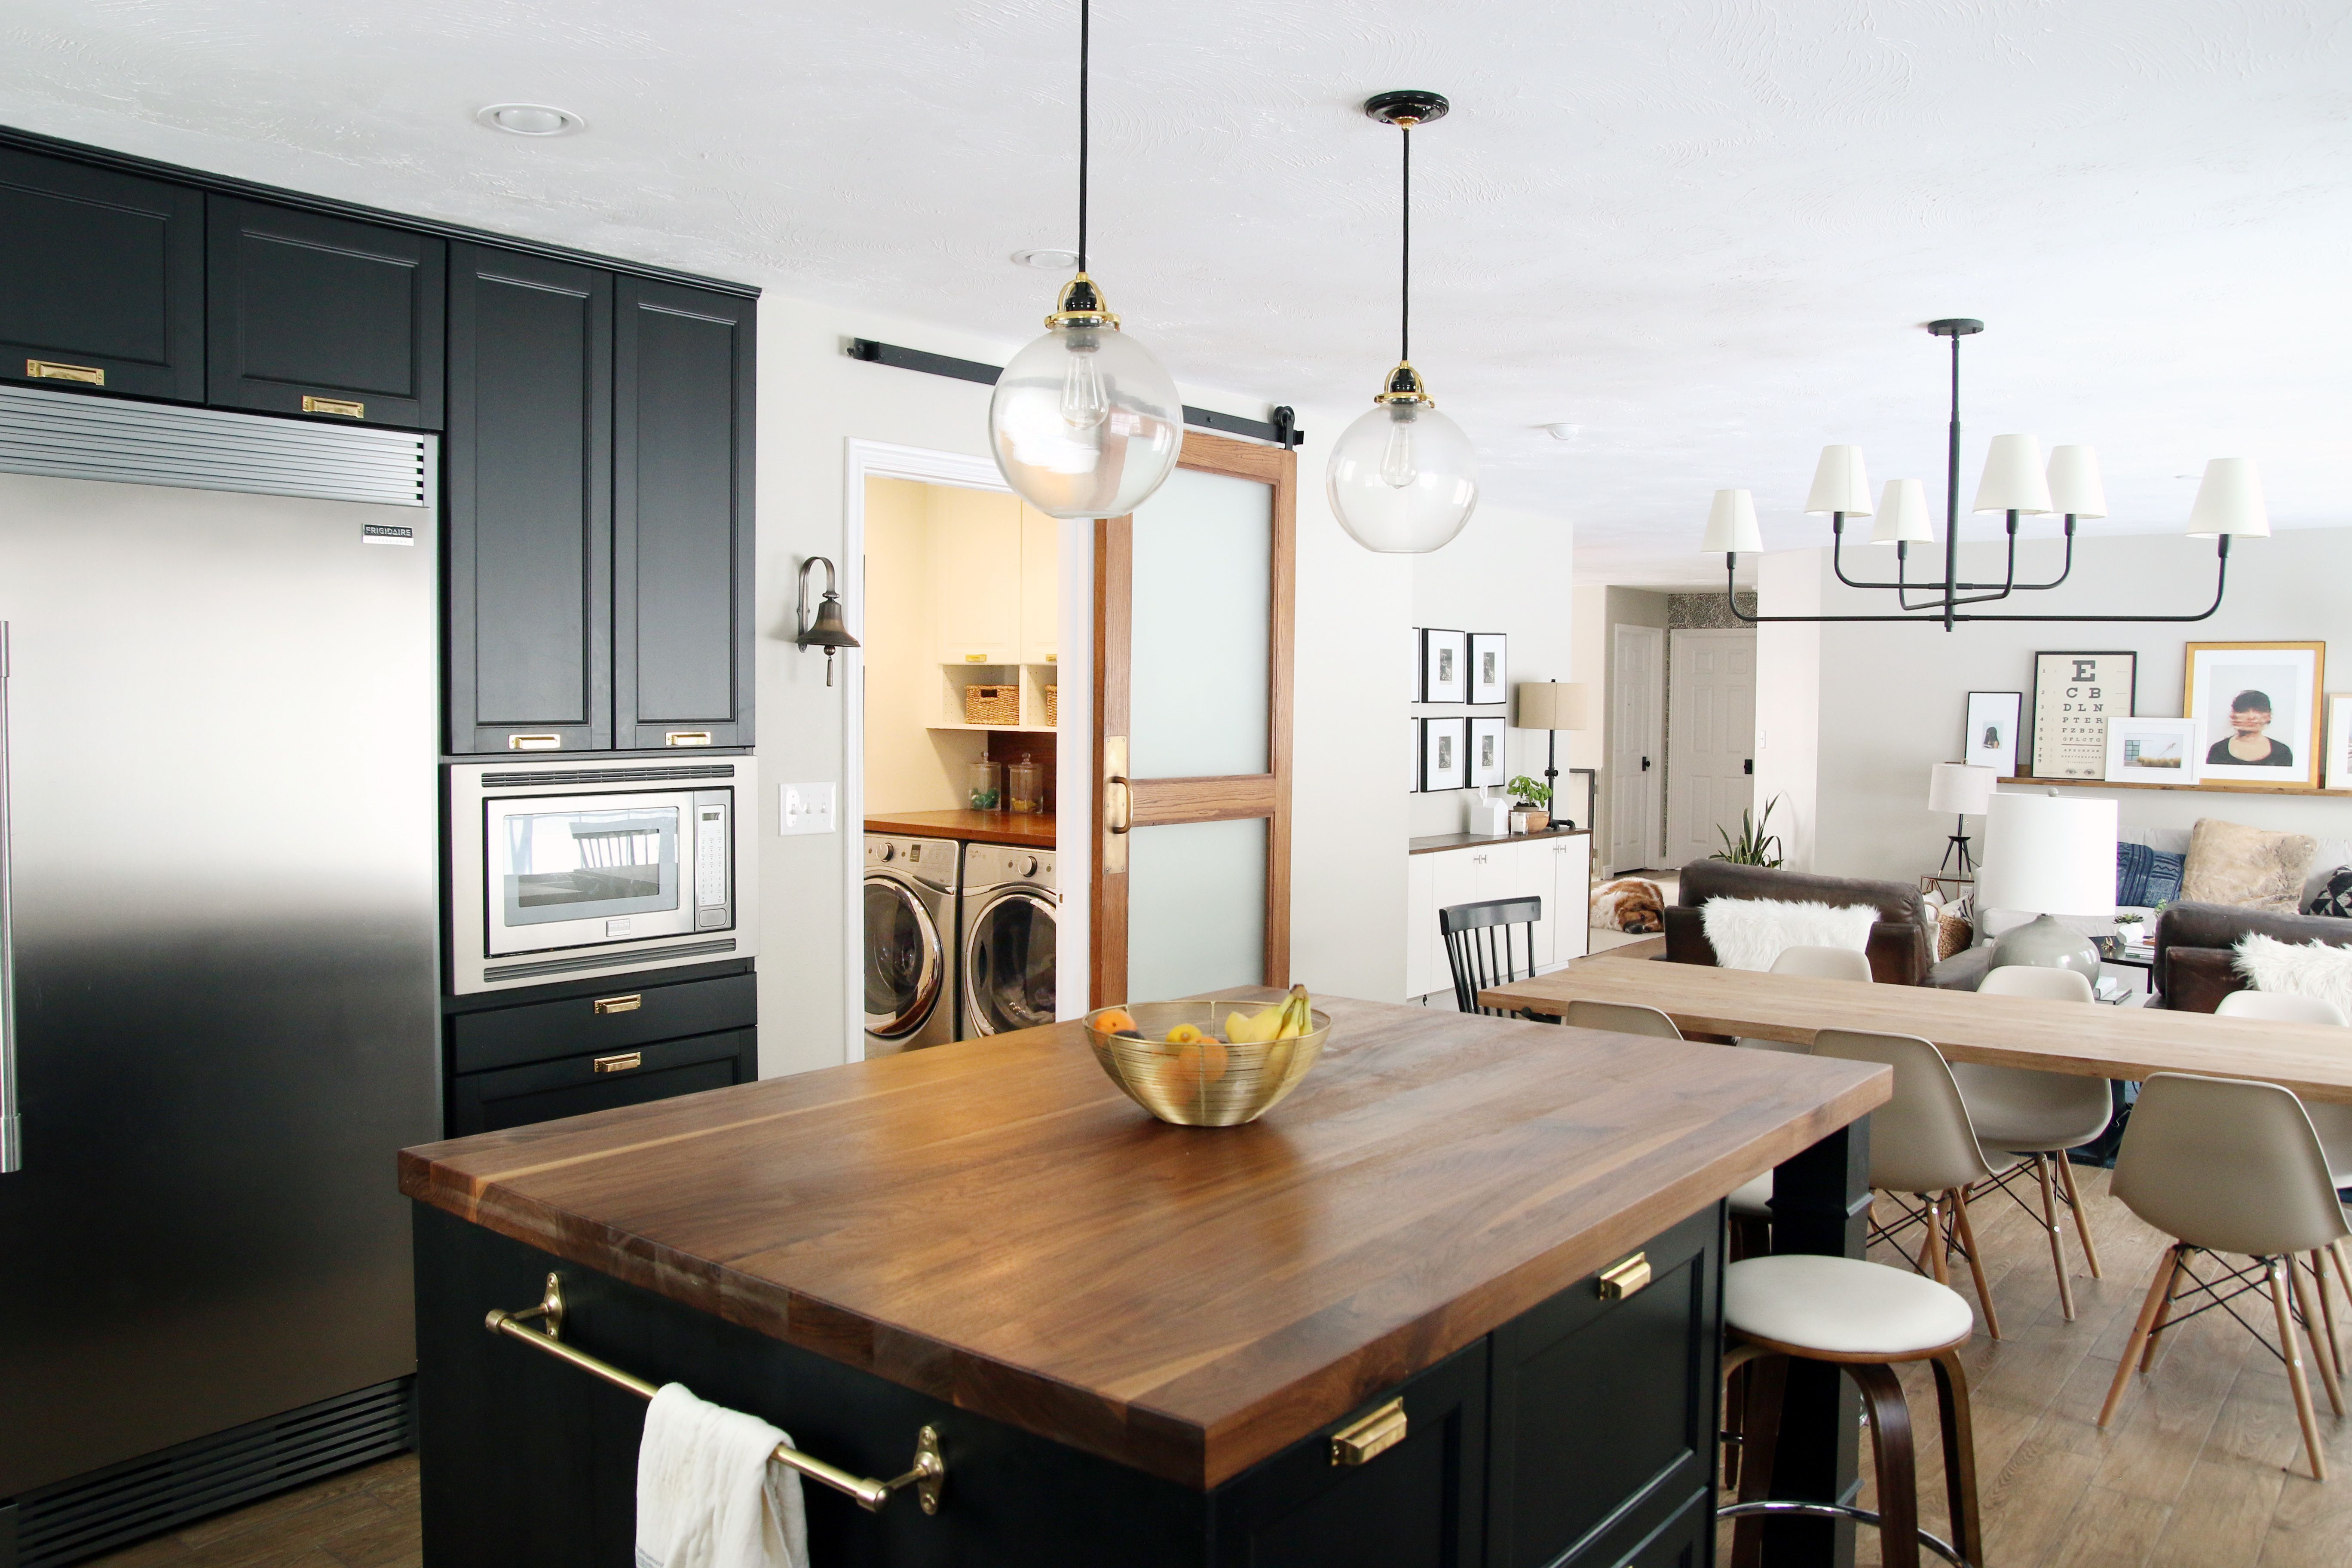 cost of a kitchen renovation - Dorit.mercatodos.co